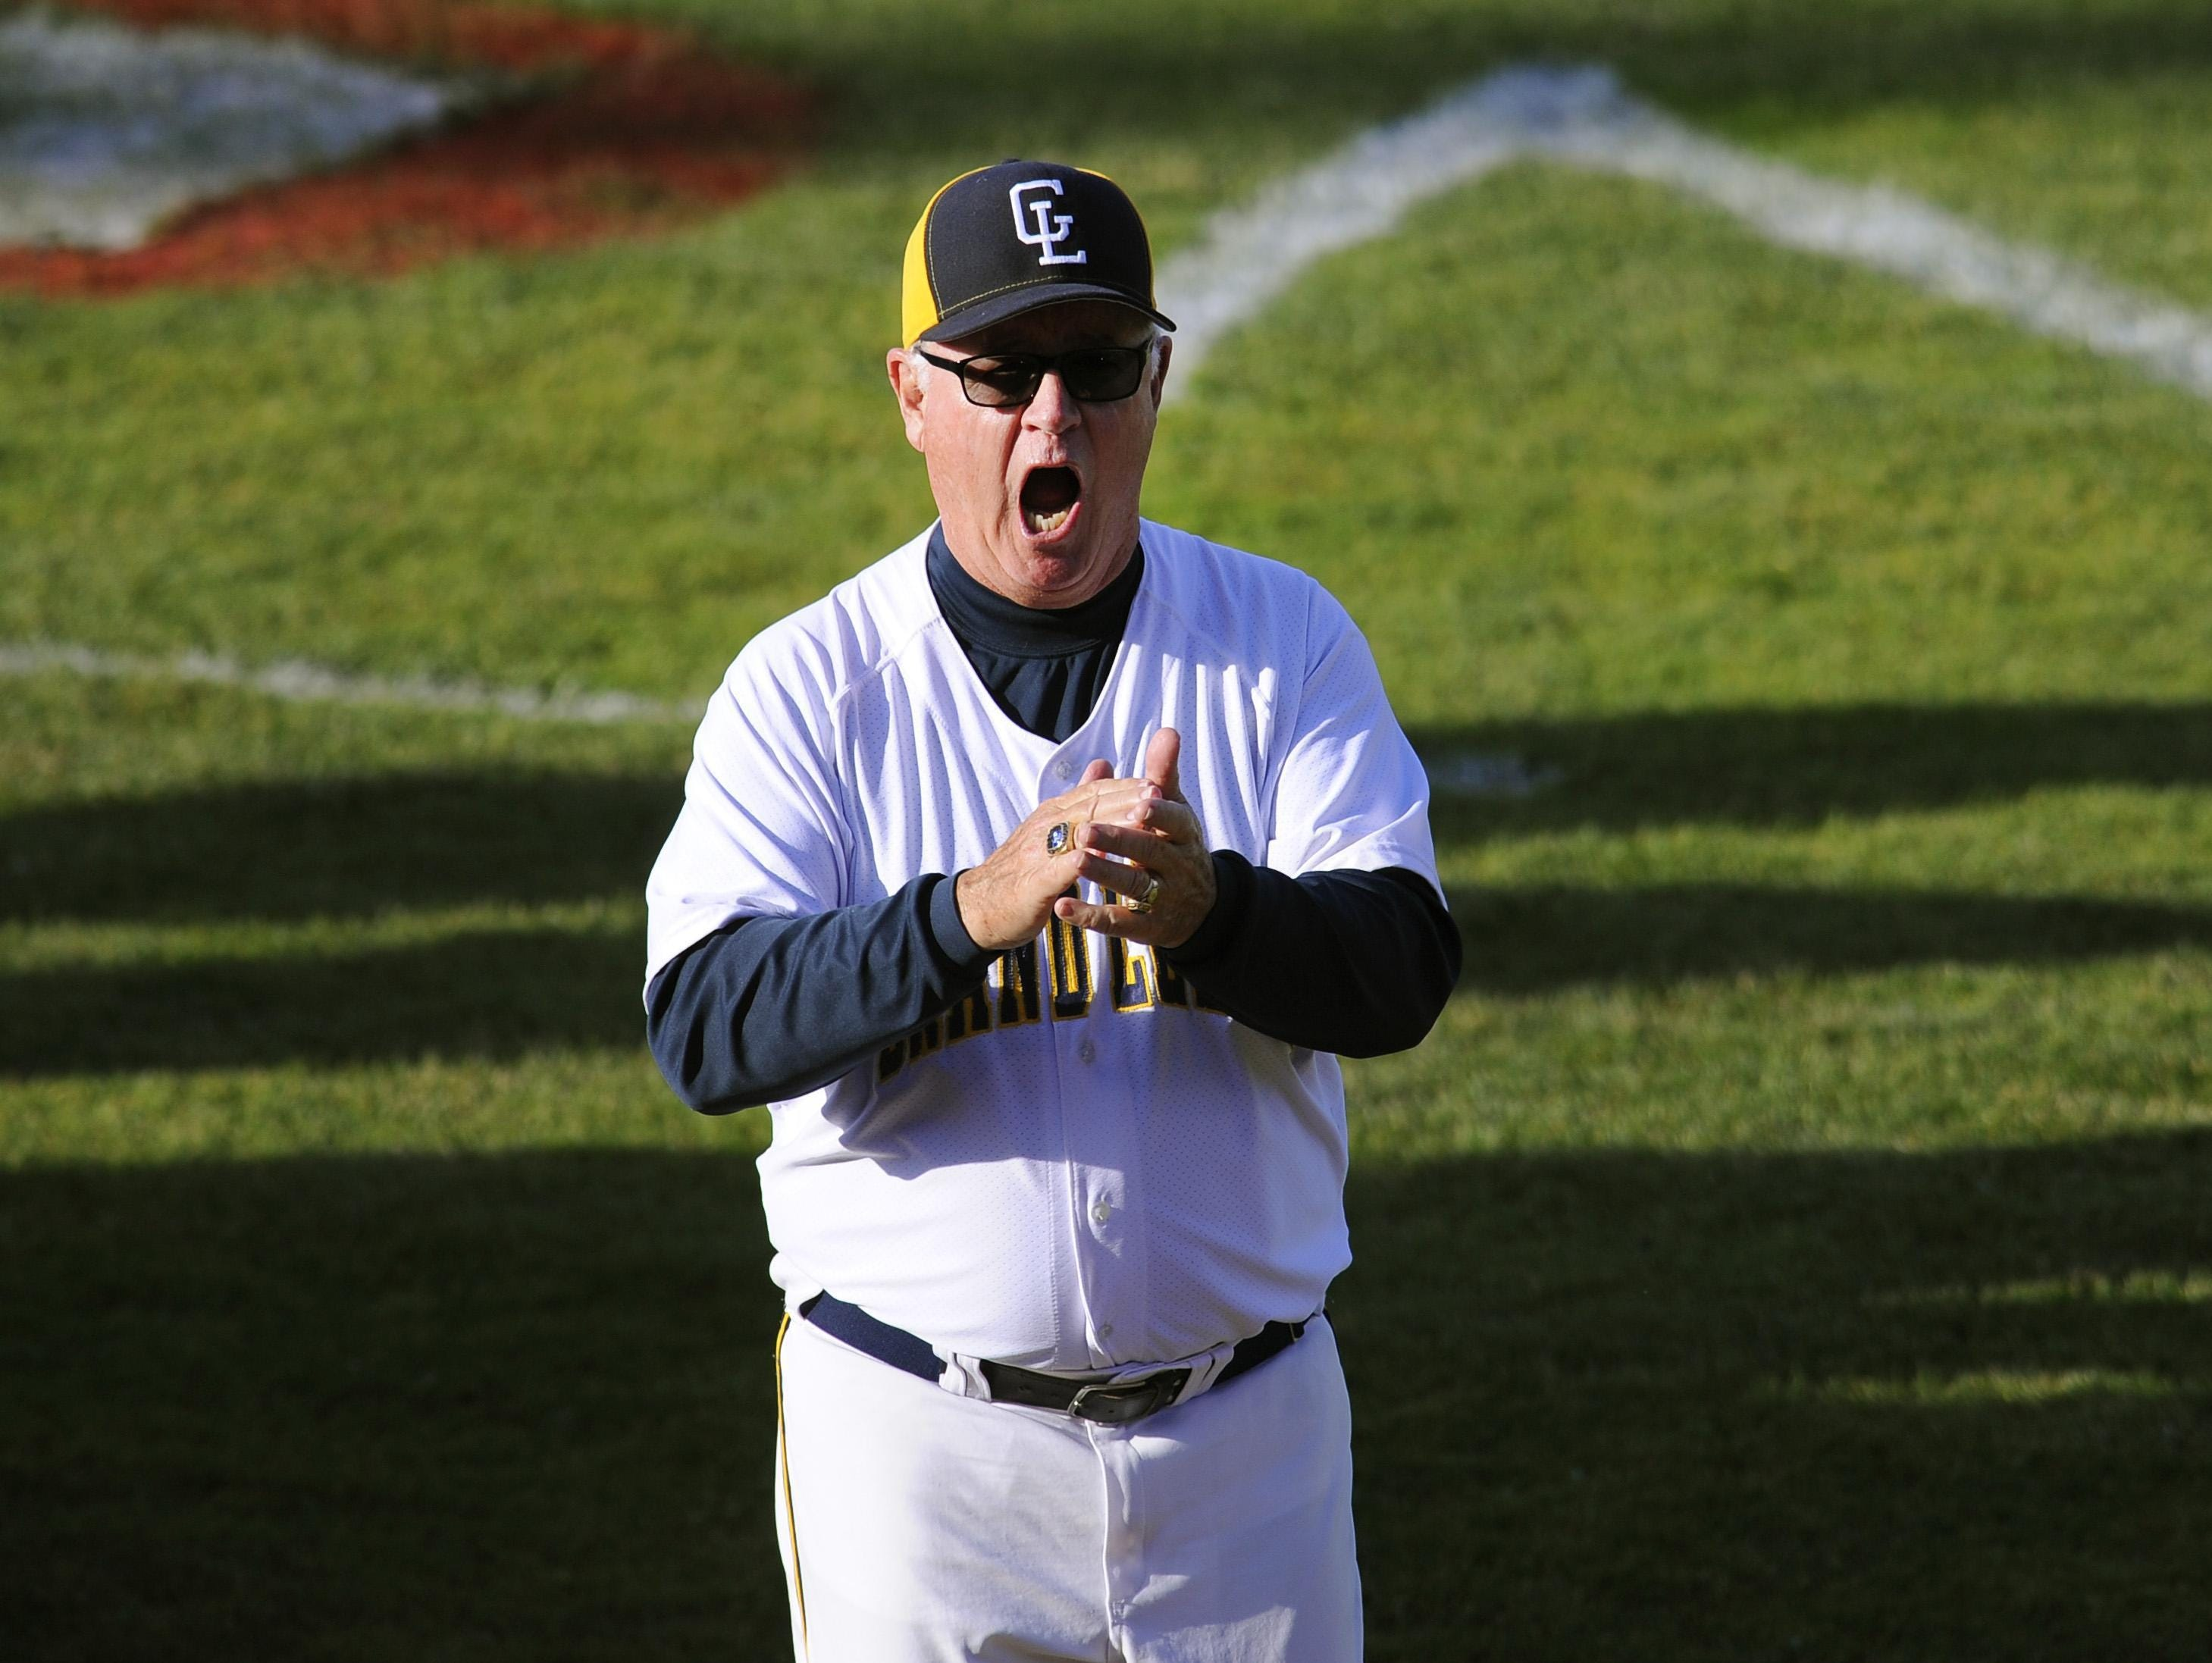 """Grand Ledge's Pat O'Keefe, 70, had 1,203 career wins entering Thursday's doubleheader against Okemos. """"I still like dressing up and acting like a kid,"""" he said."""